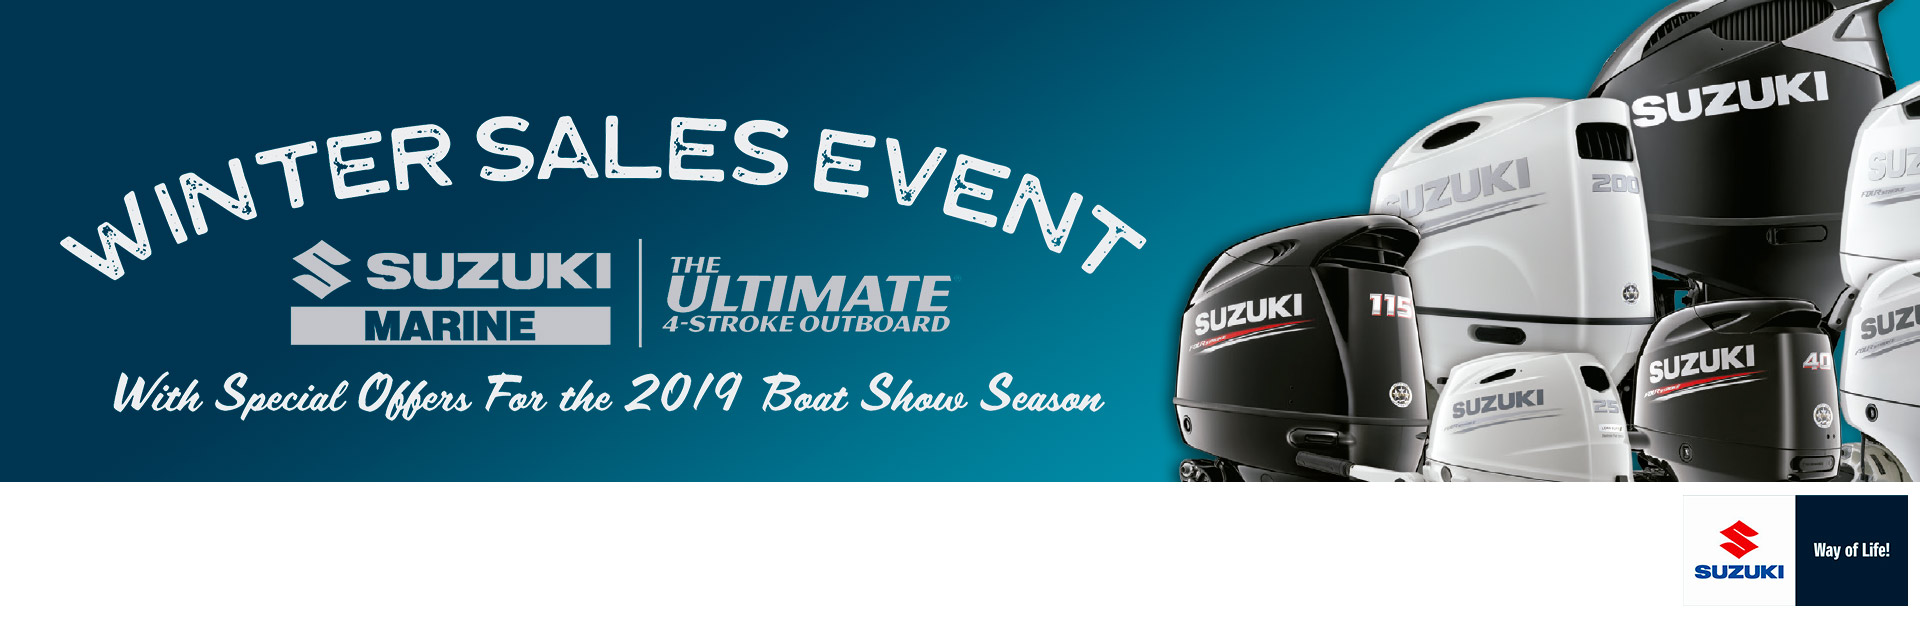 Suzuki: Suzuki Winter Sales Event